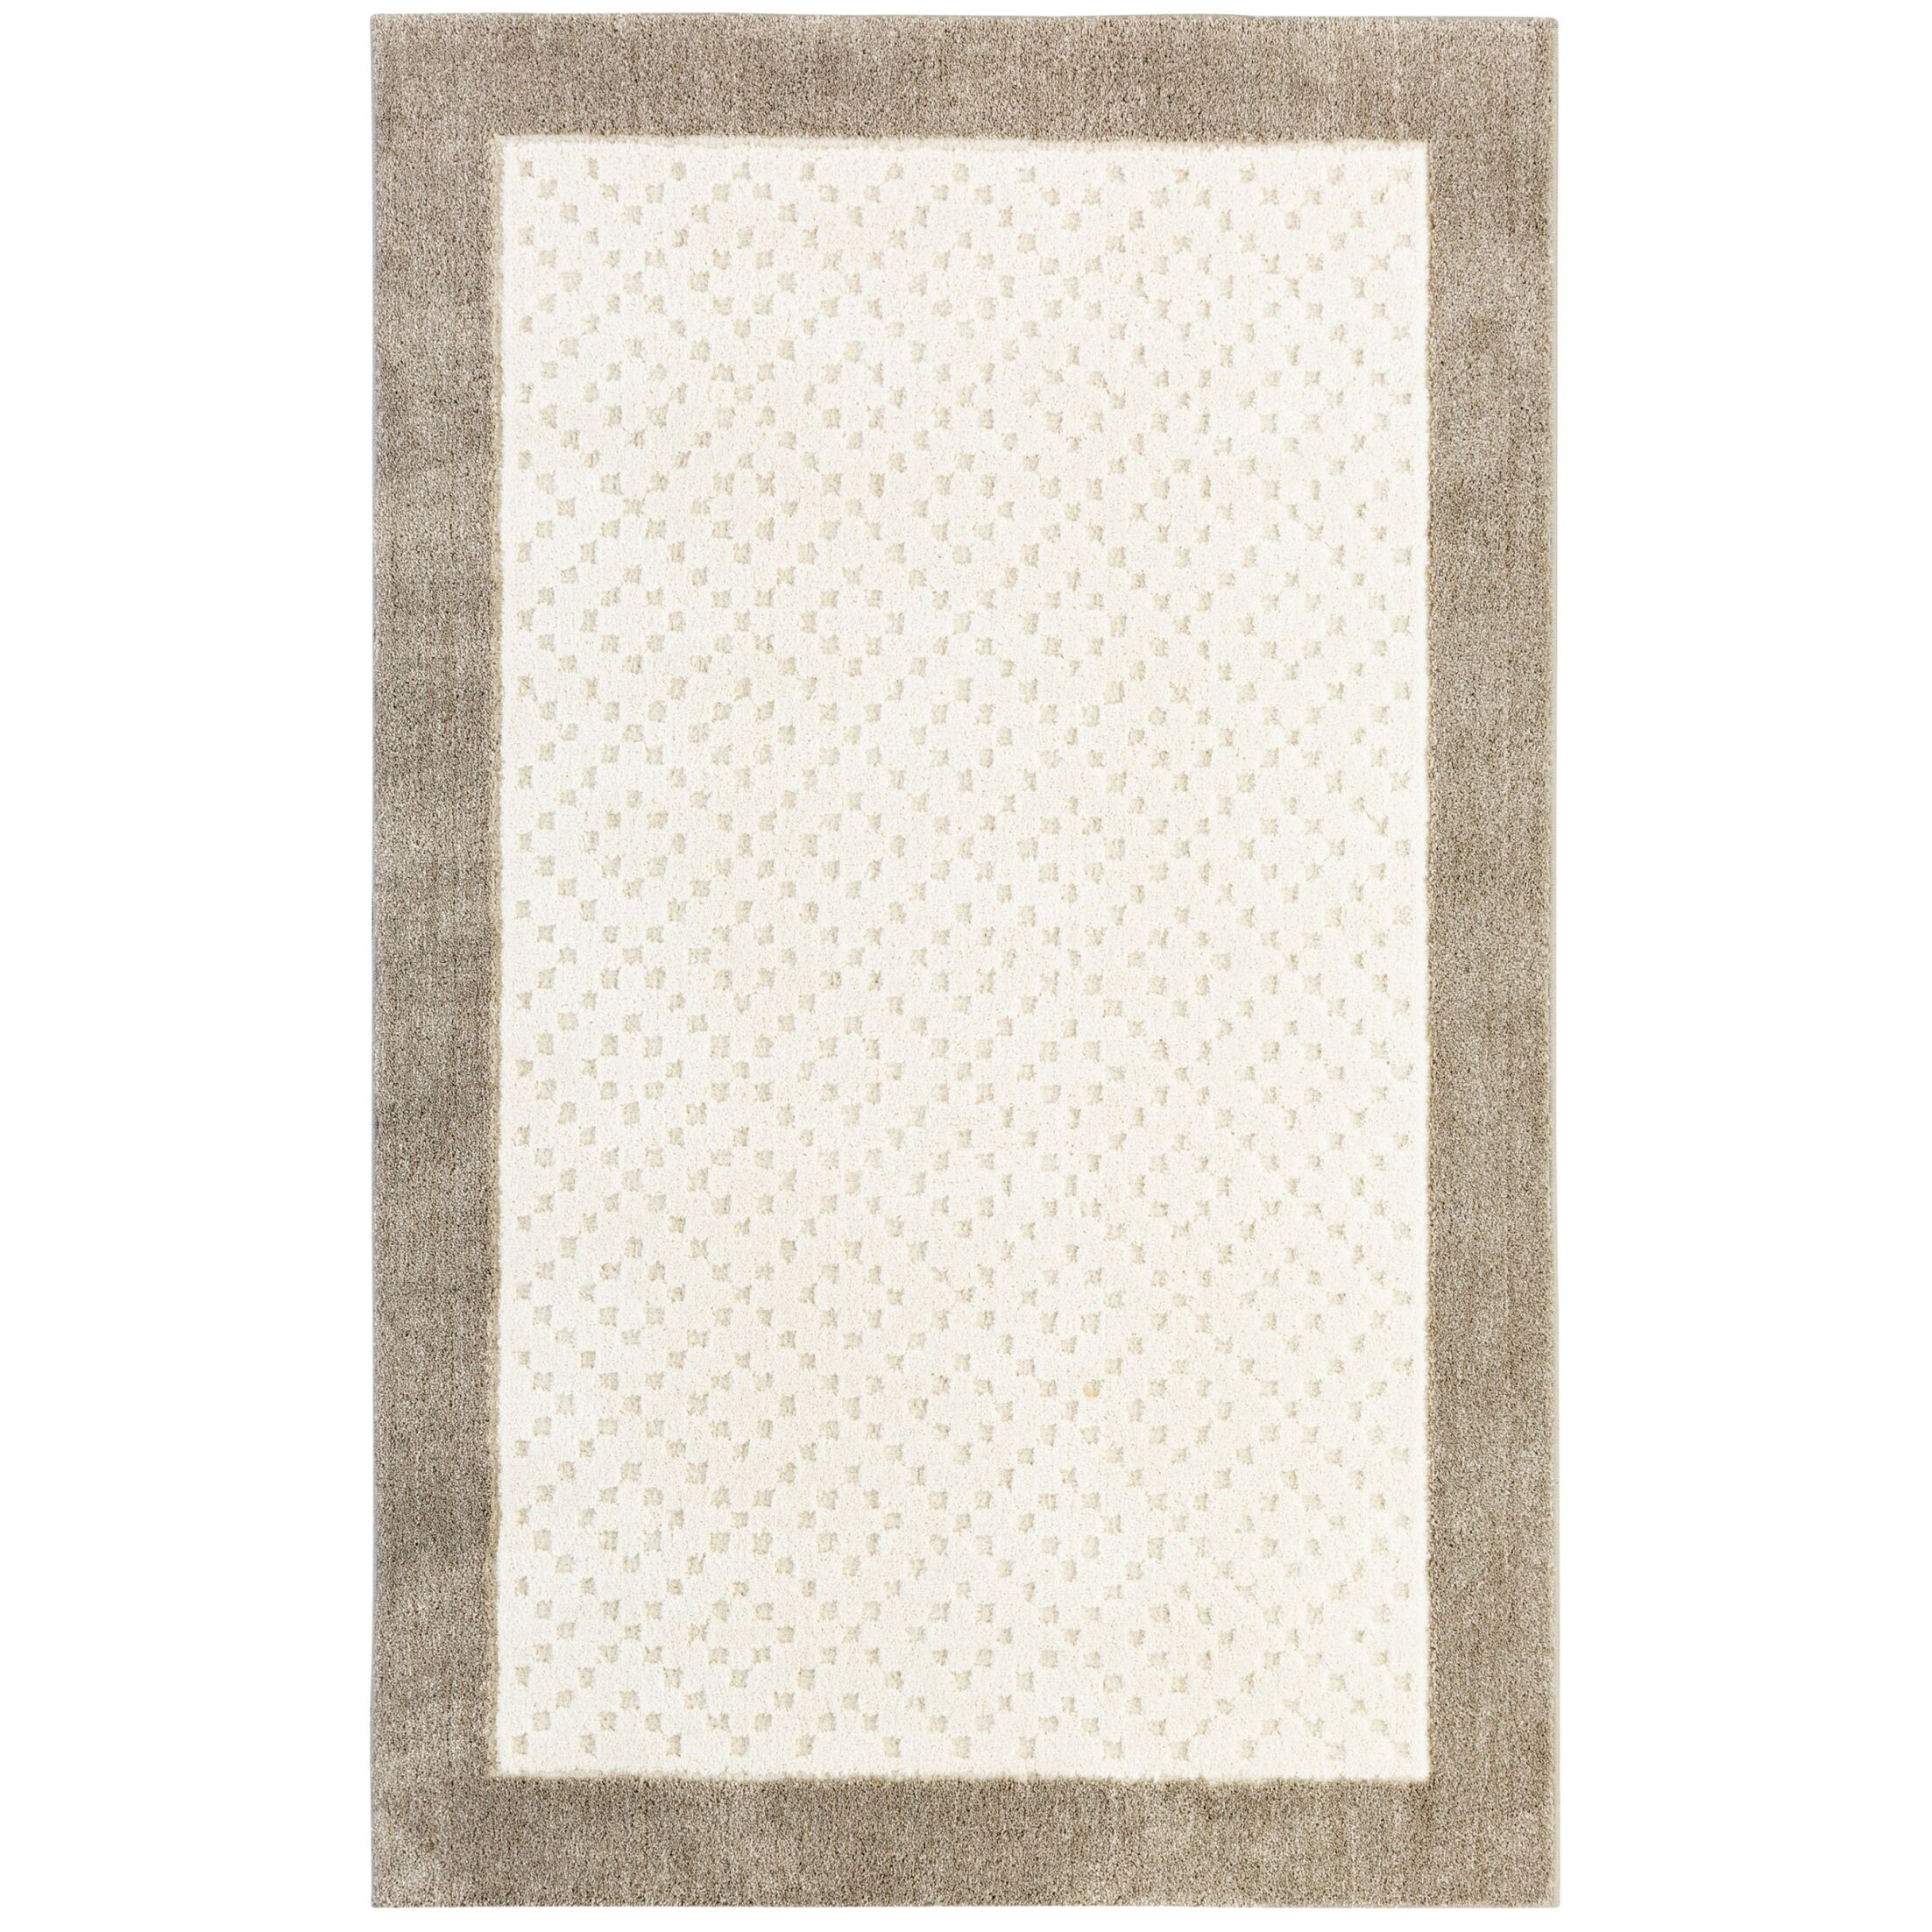 Braydon Beige Area Rug Rug Size: Rectangle 5'x8'